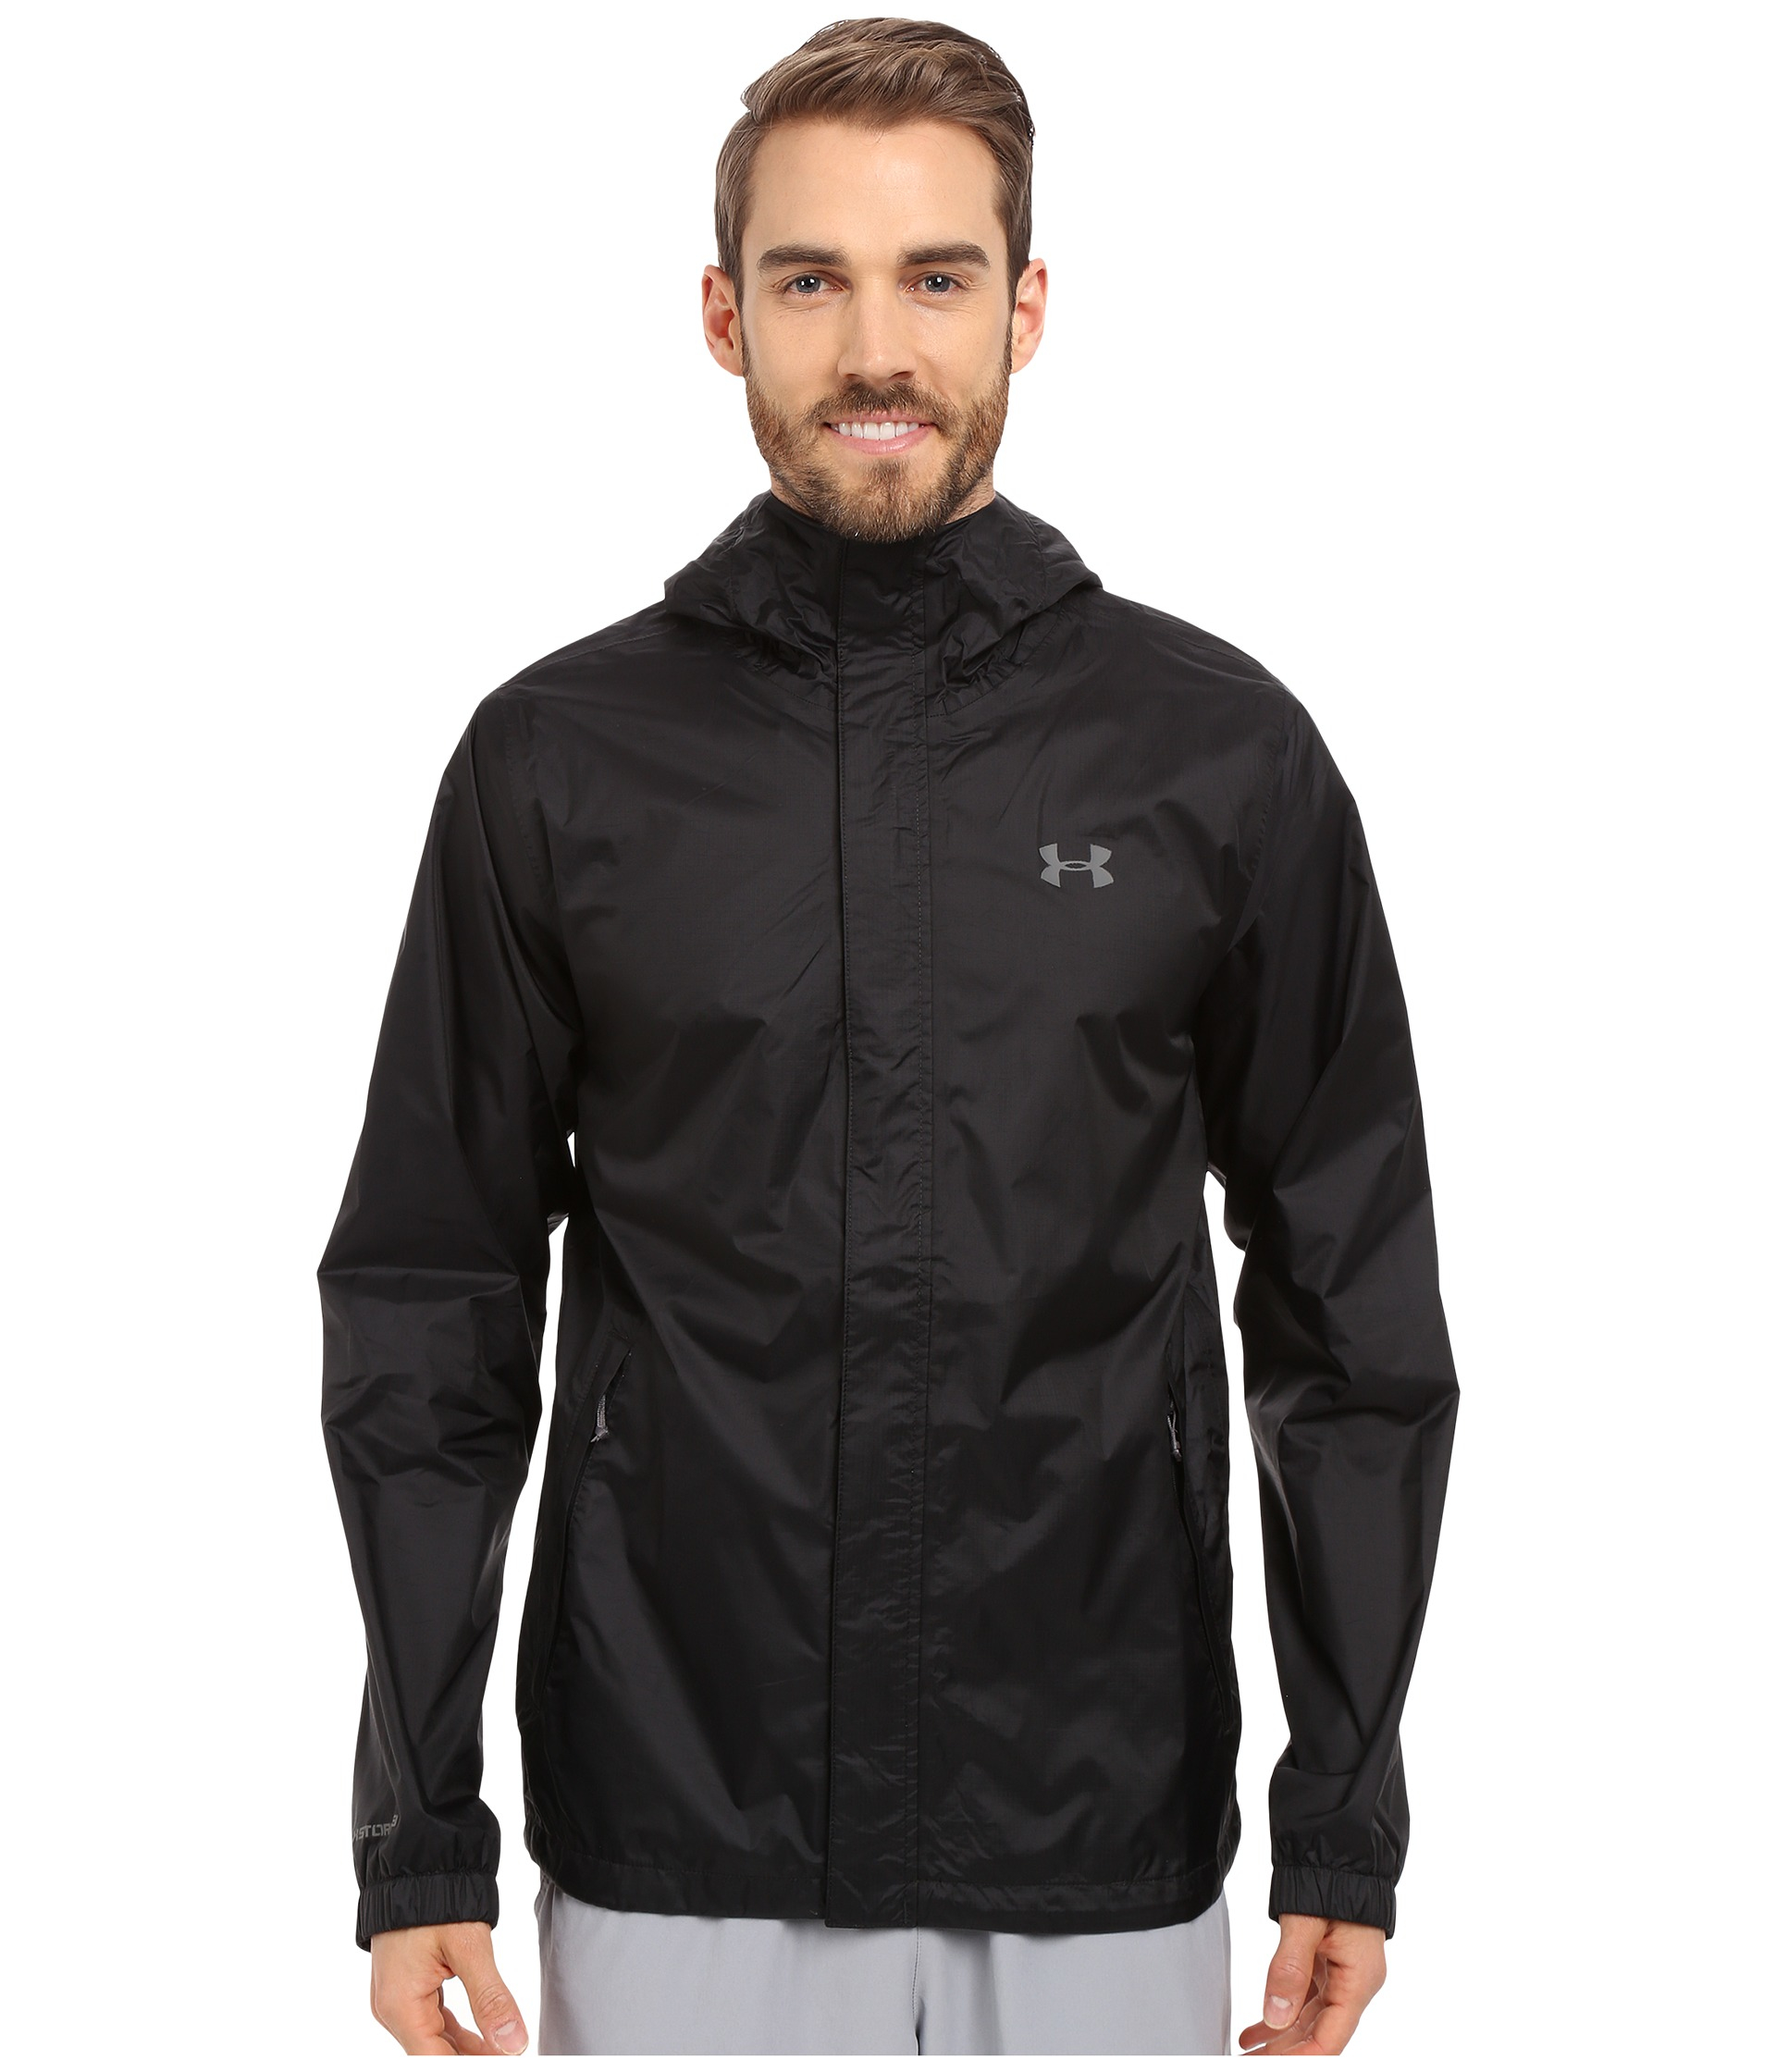 f6f1c80f4 Under Armour Ua Bora Jacket in Black for Men - Lyst